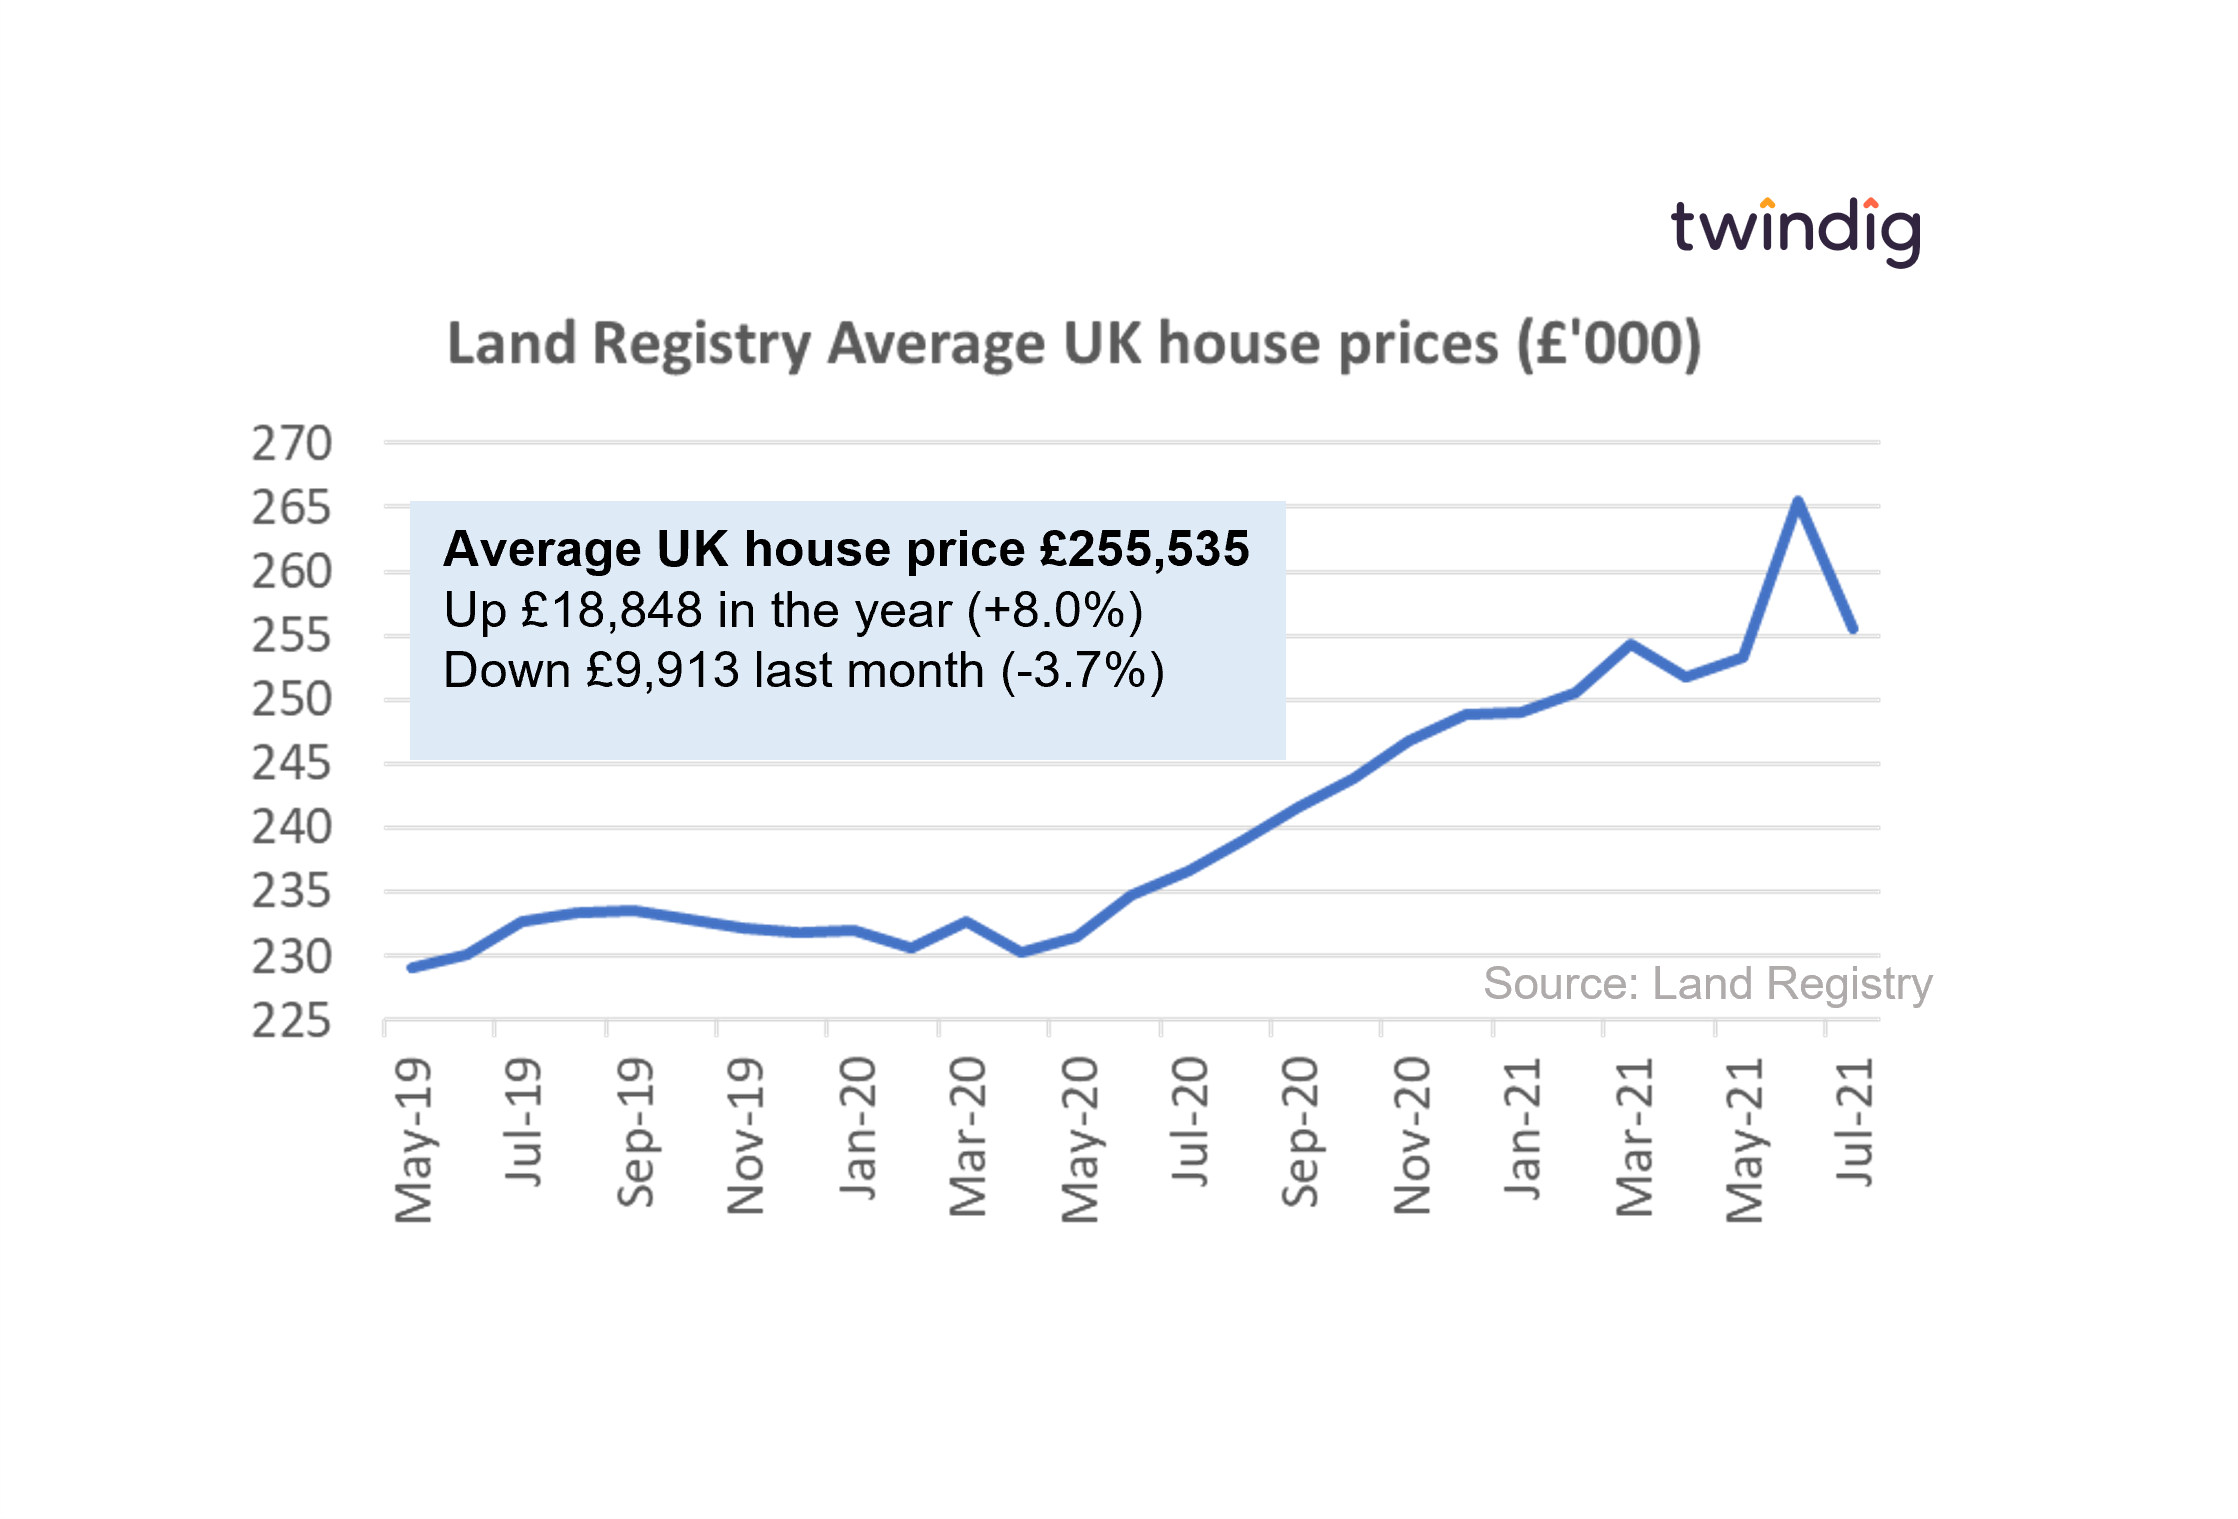 graph chart house prices land registry july 2021 twindig anthony codling